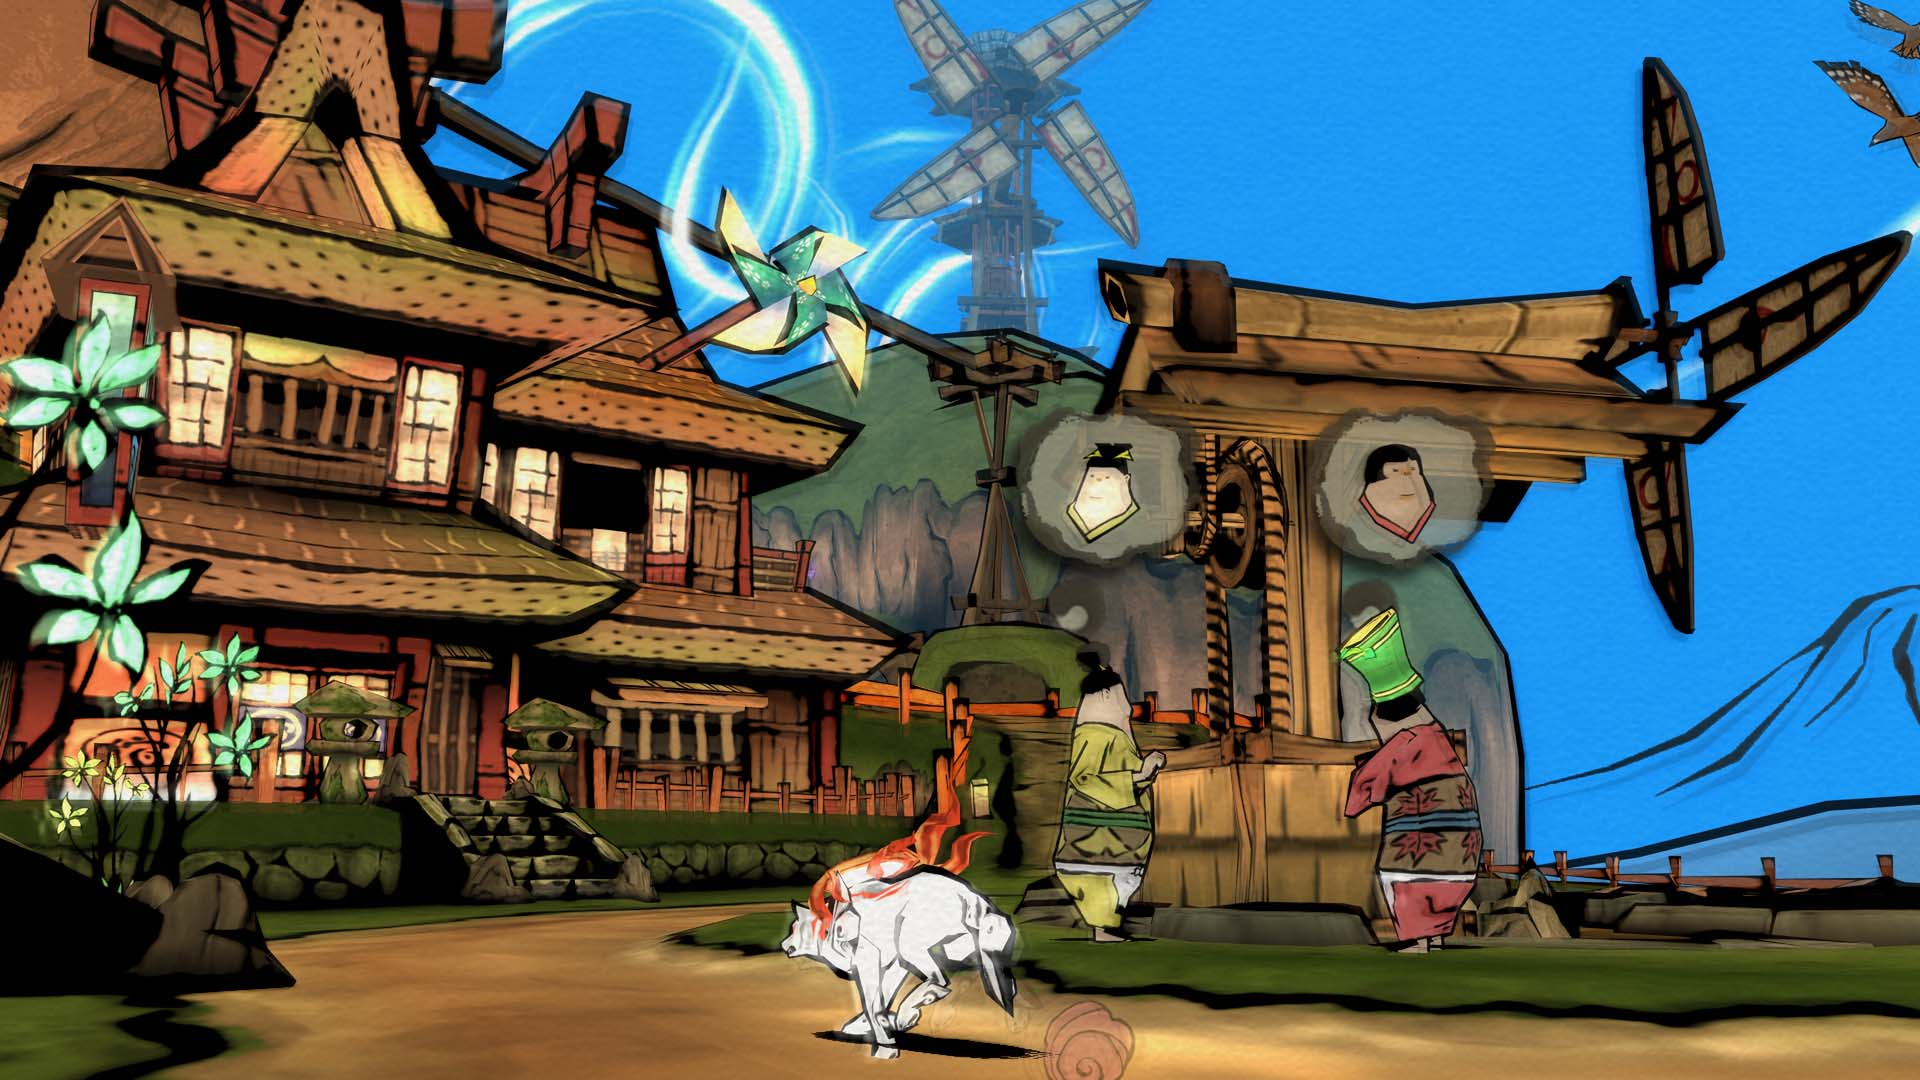 Development of 'Okami' sequel desired by both Hideki Kamiya and Ikumi Nakamura